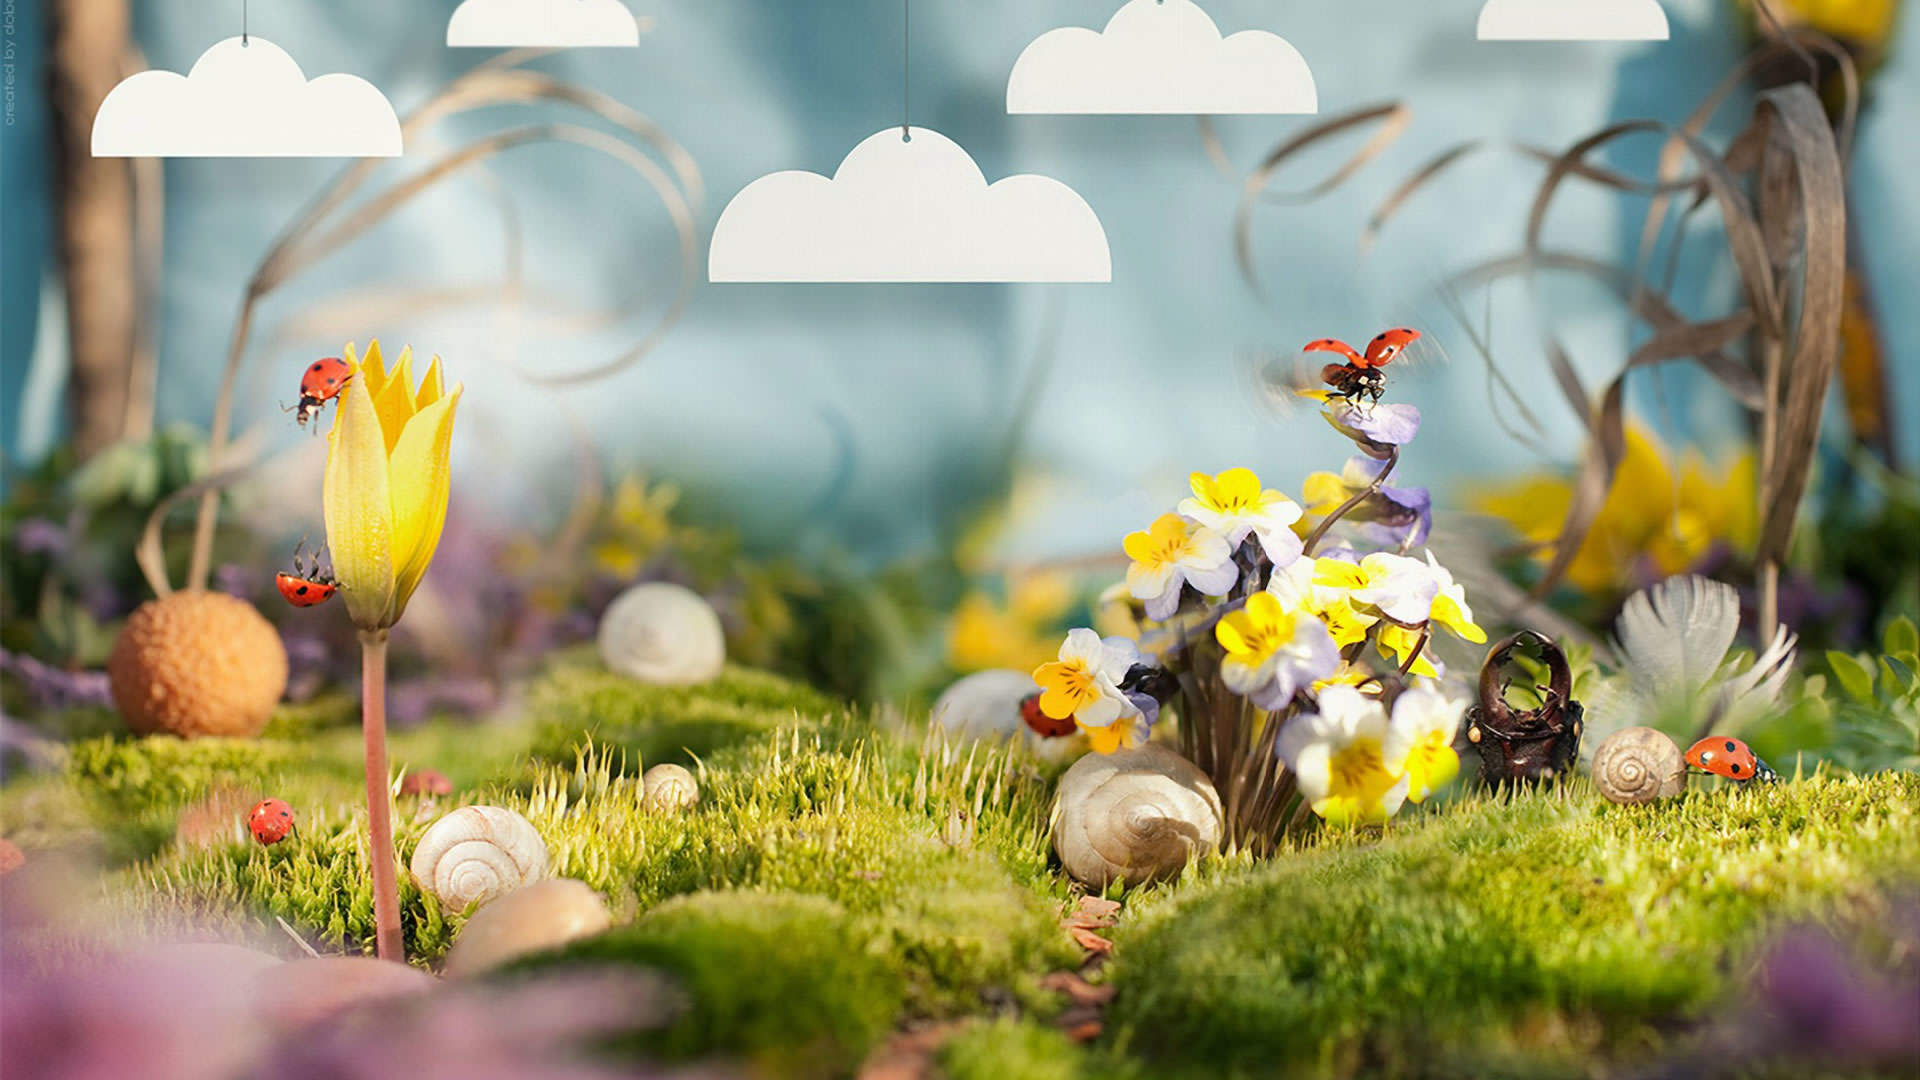 Fantasy Spring Wallpaper 1920x1080